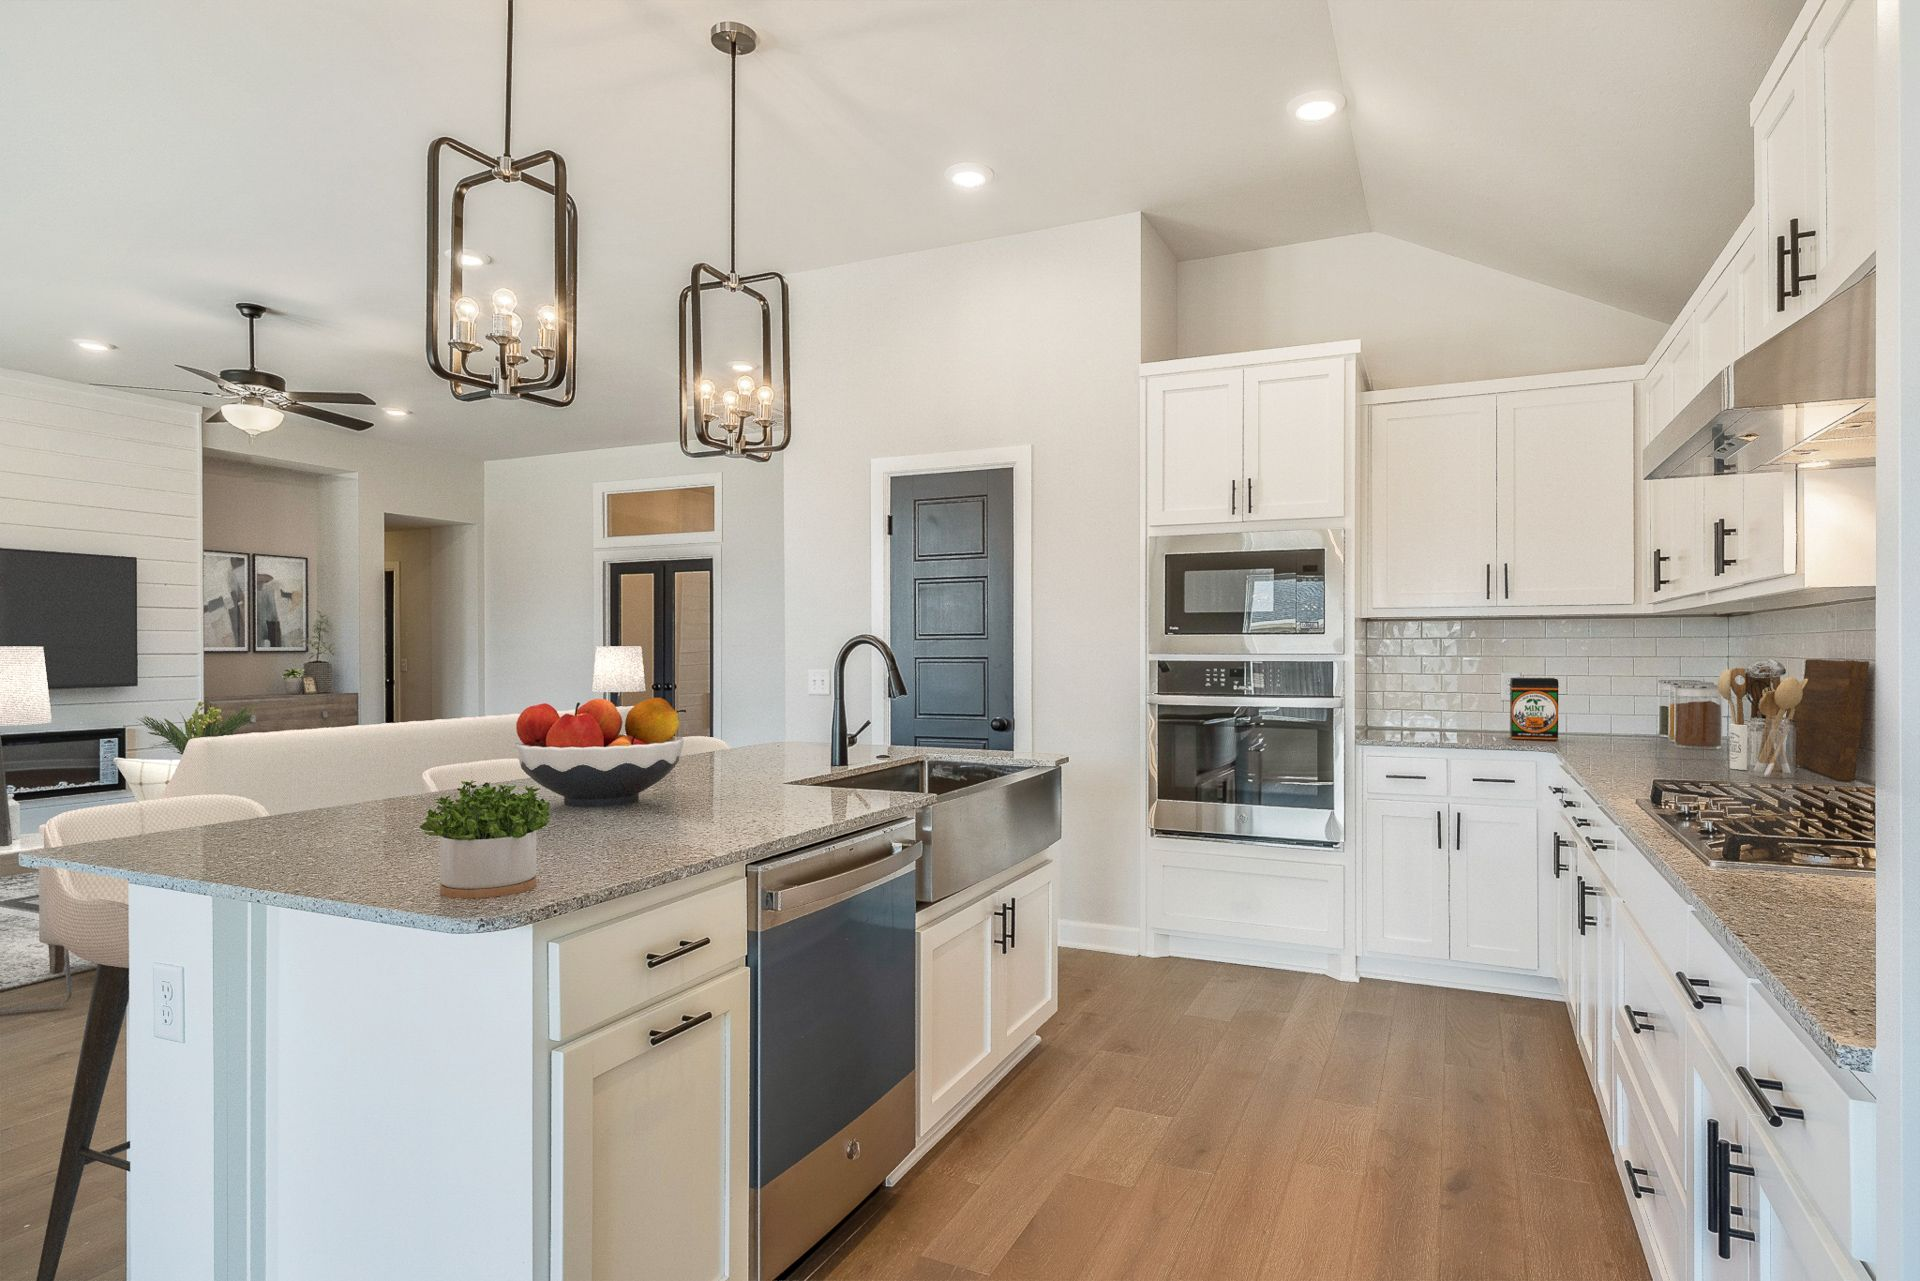 Kitchen featured in the Montgomery By Ideal Homes in Oklahoma City, OK